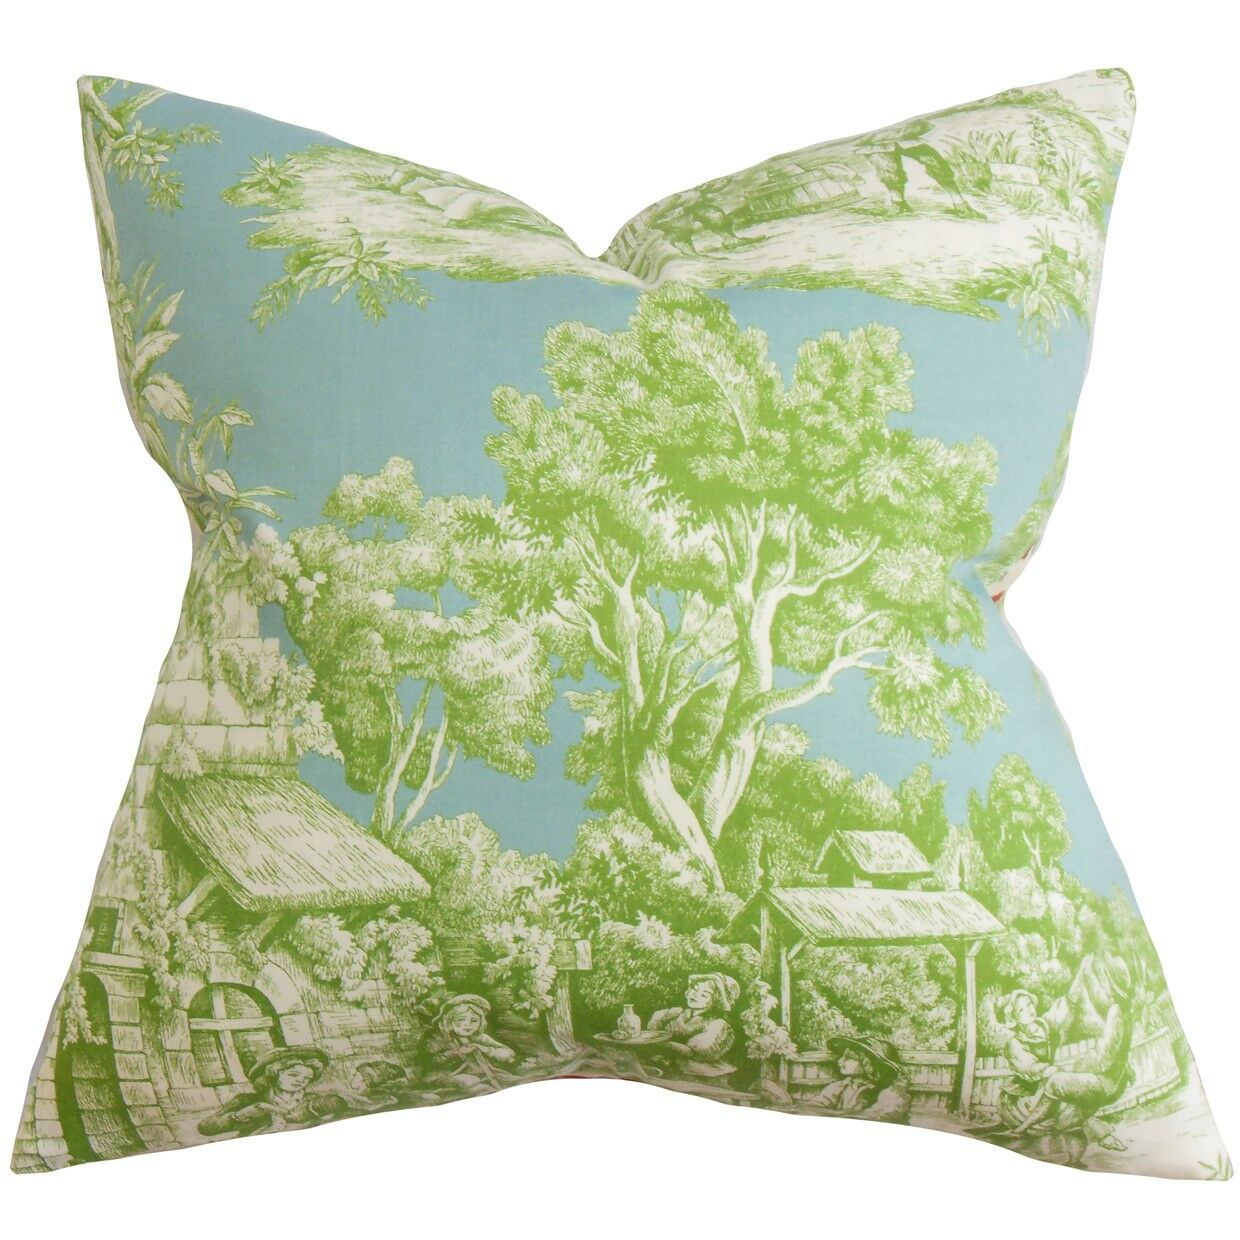 Wellhead Toile Bedding Sham Size: Standard, Color: Green